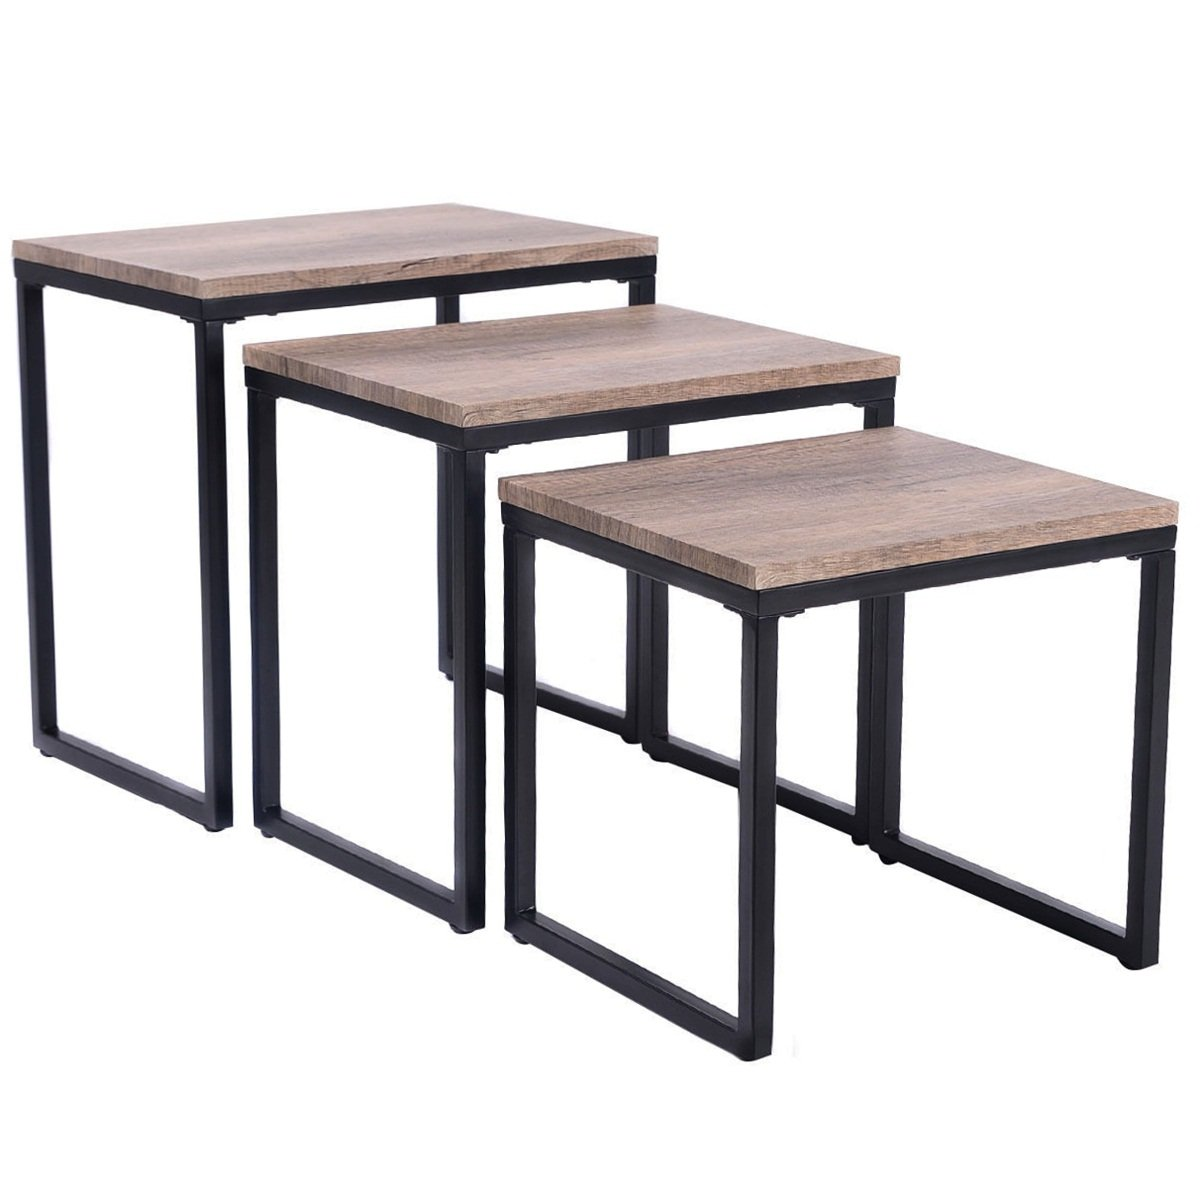 3 Size Stacking MDF Boards Coffee End Table Set